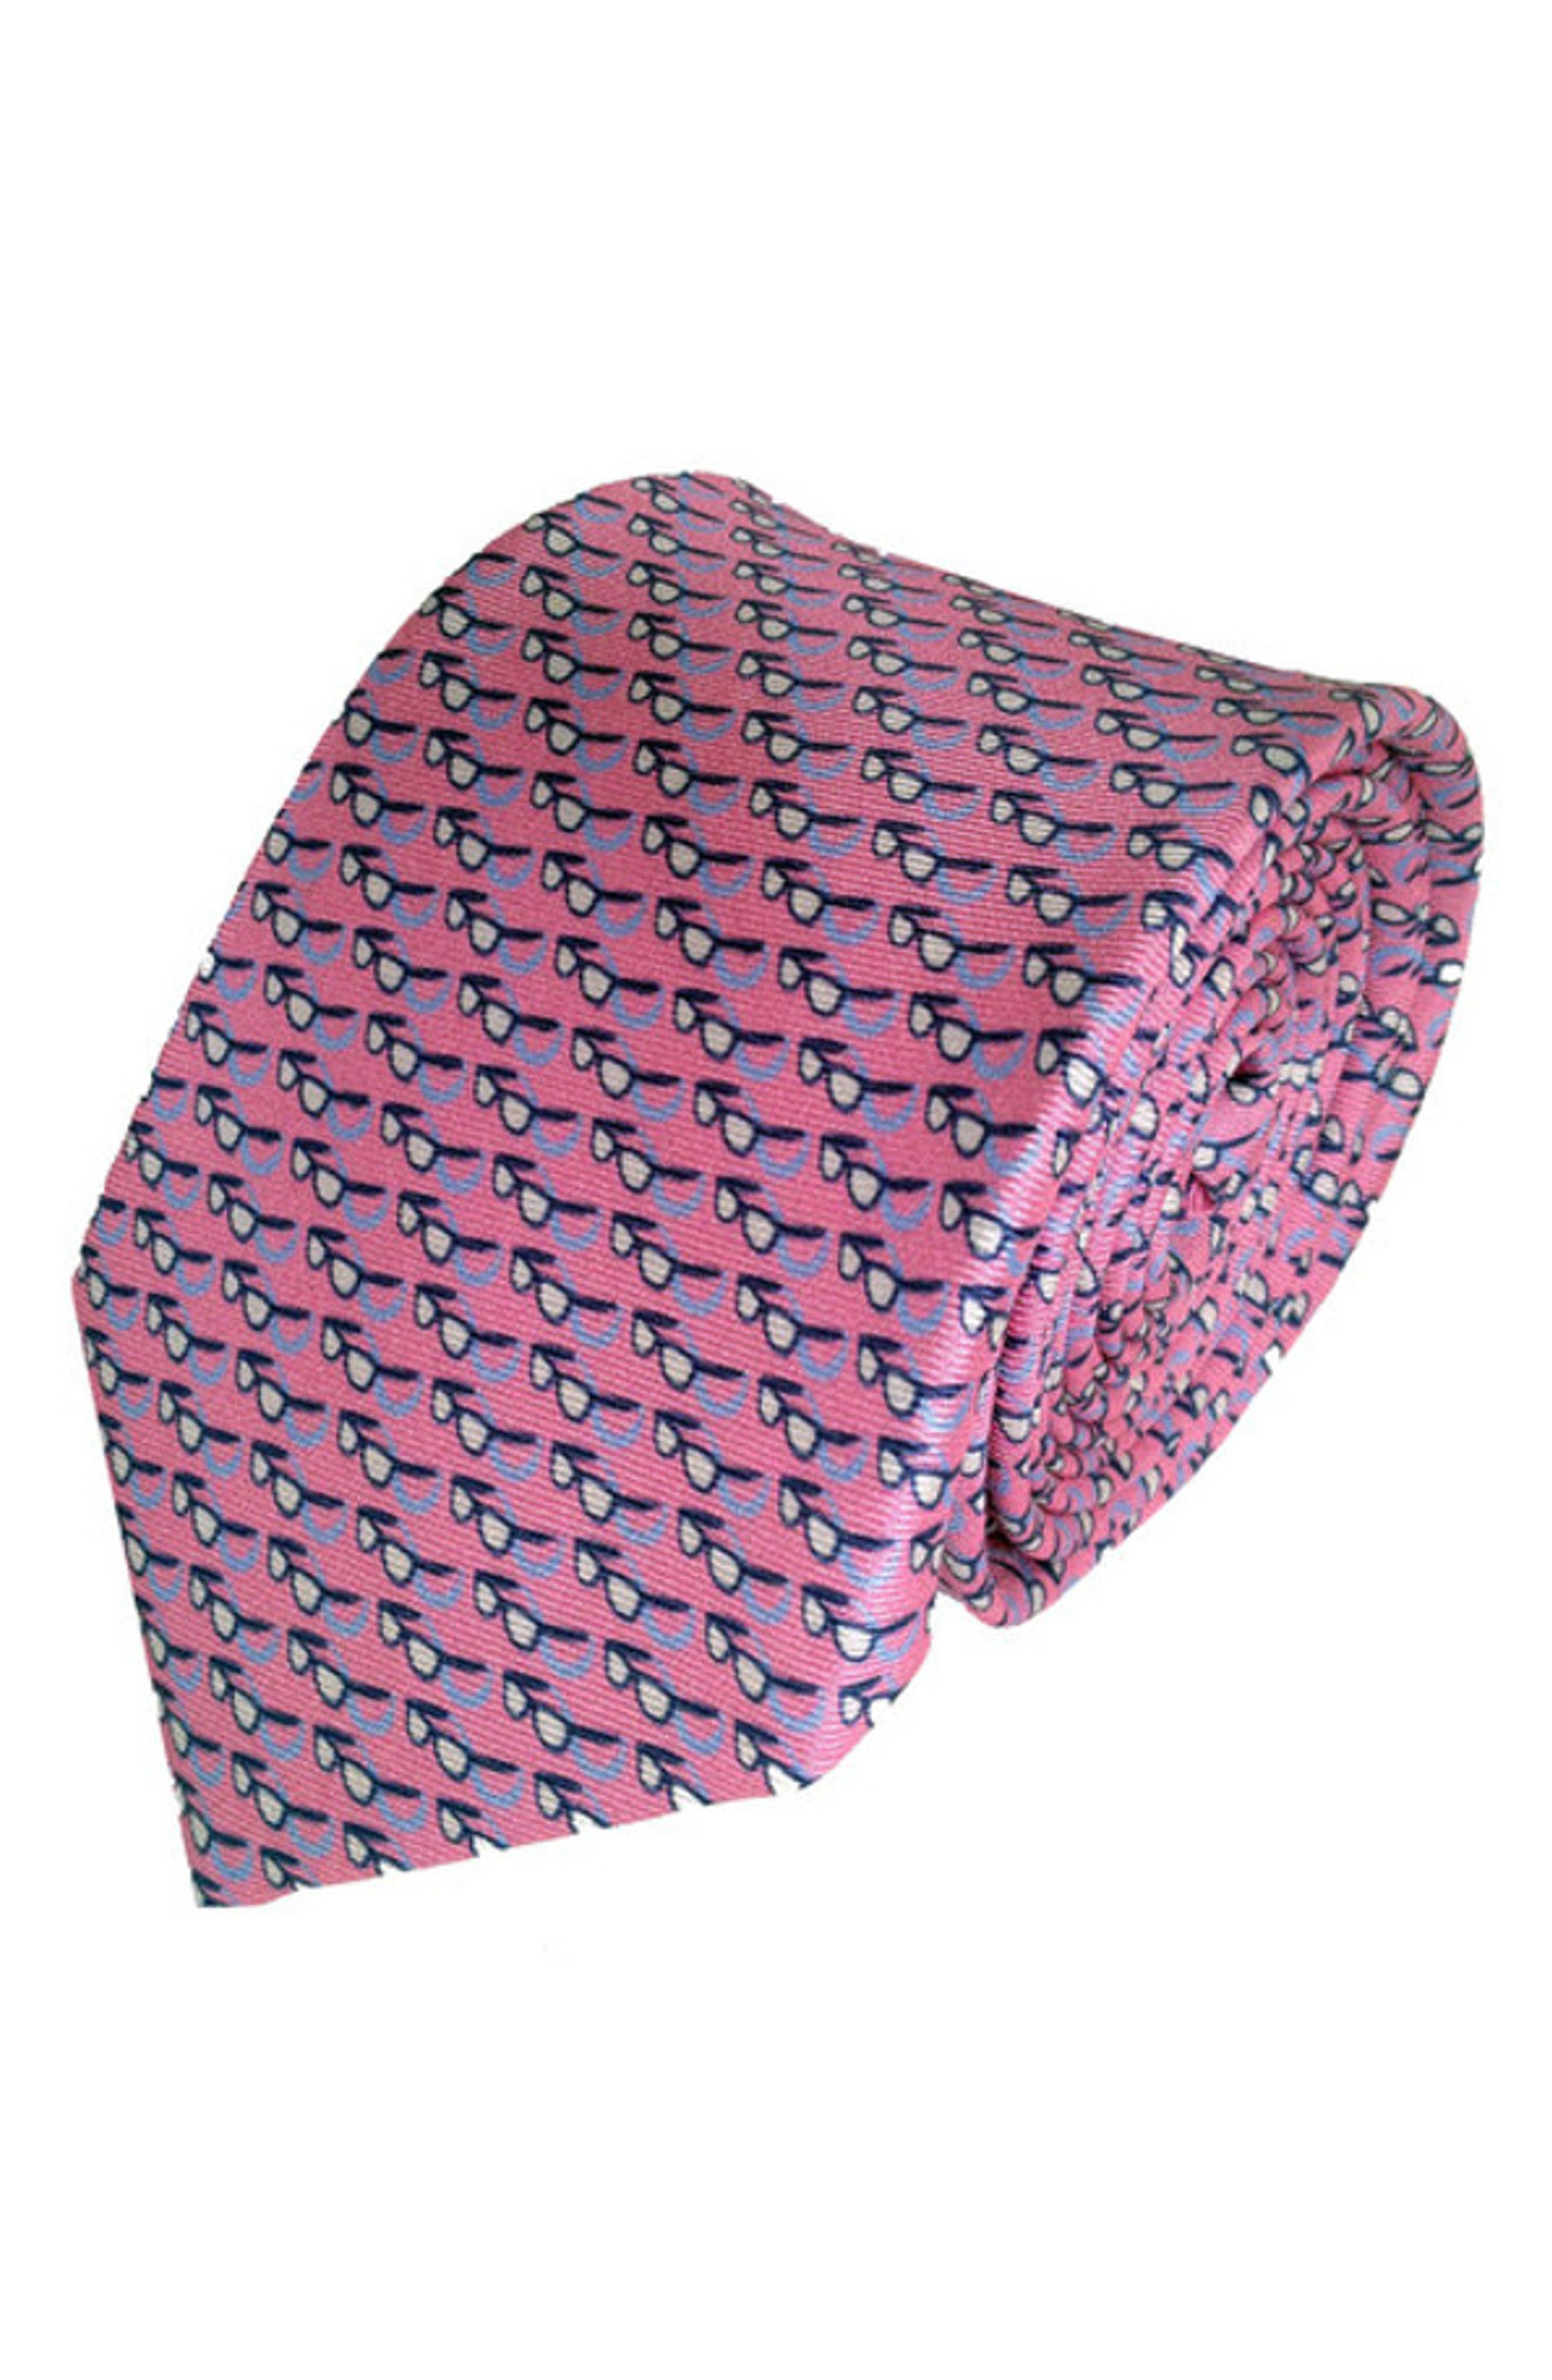 Sweet Shades Silk Tie,                             Main thumbnail 1, color,                             Pink